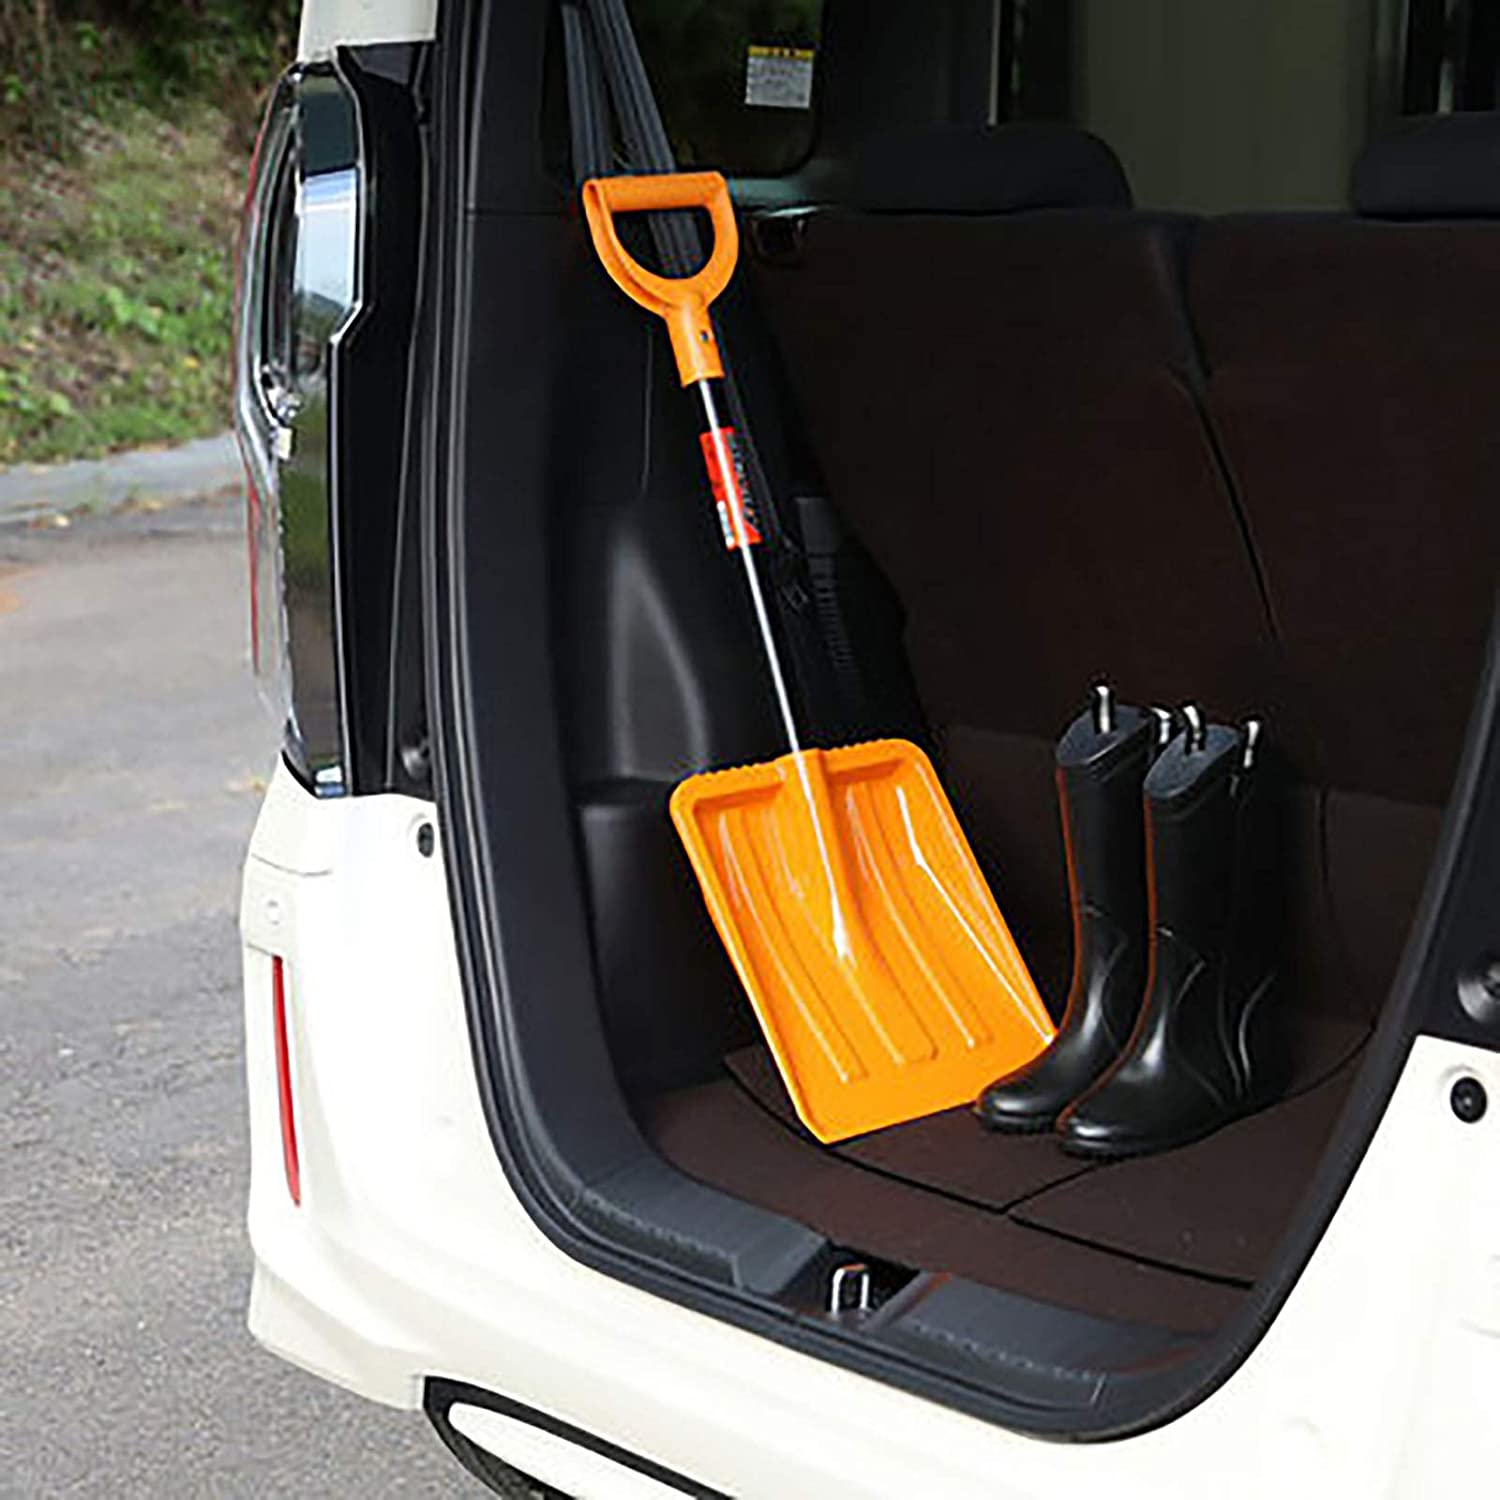 Garden Work Agriculture And Horticulture Cleaning. Professional Tool For Snow Removal Color:Green N // A Ergonomic Snow Shovel//ice Scraper//Snow Pusher